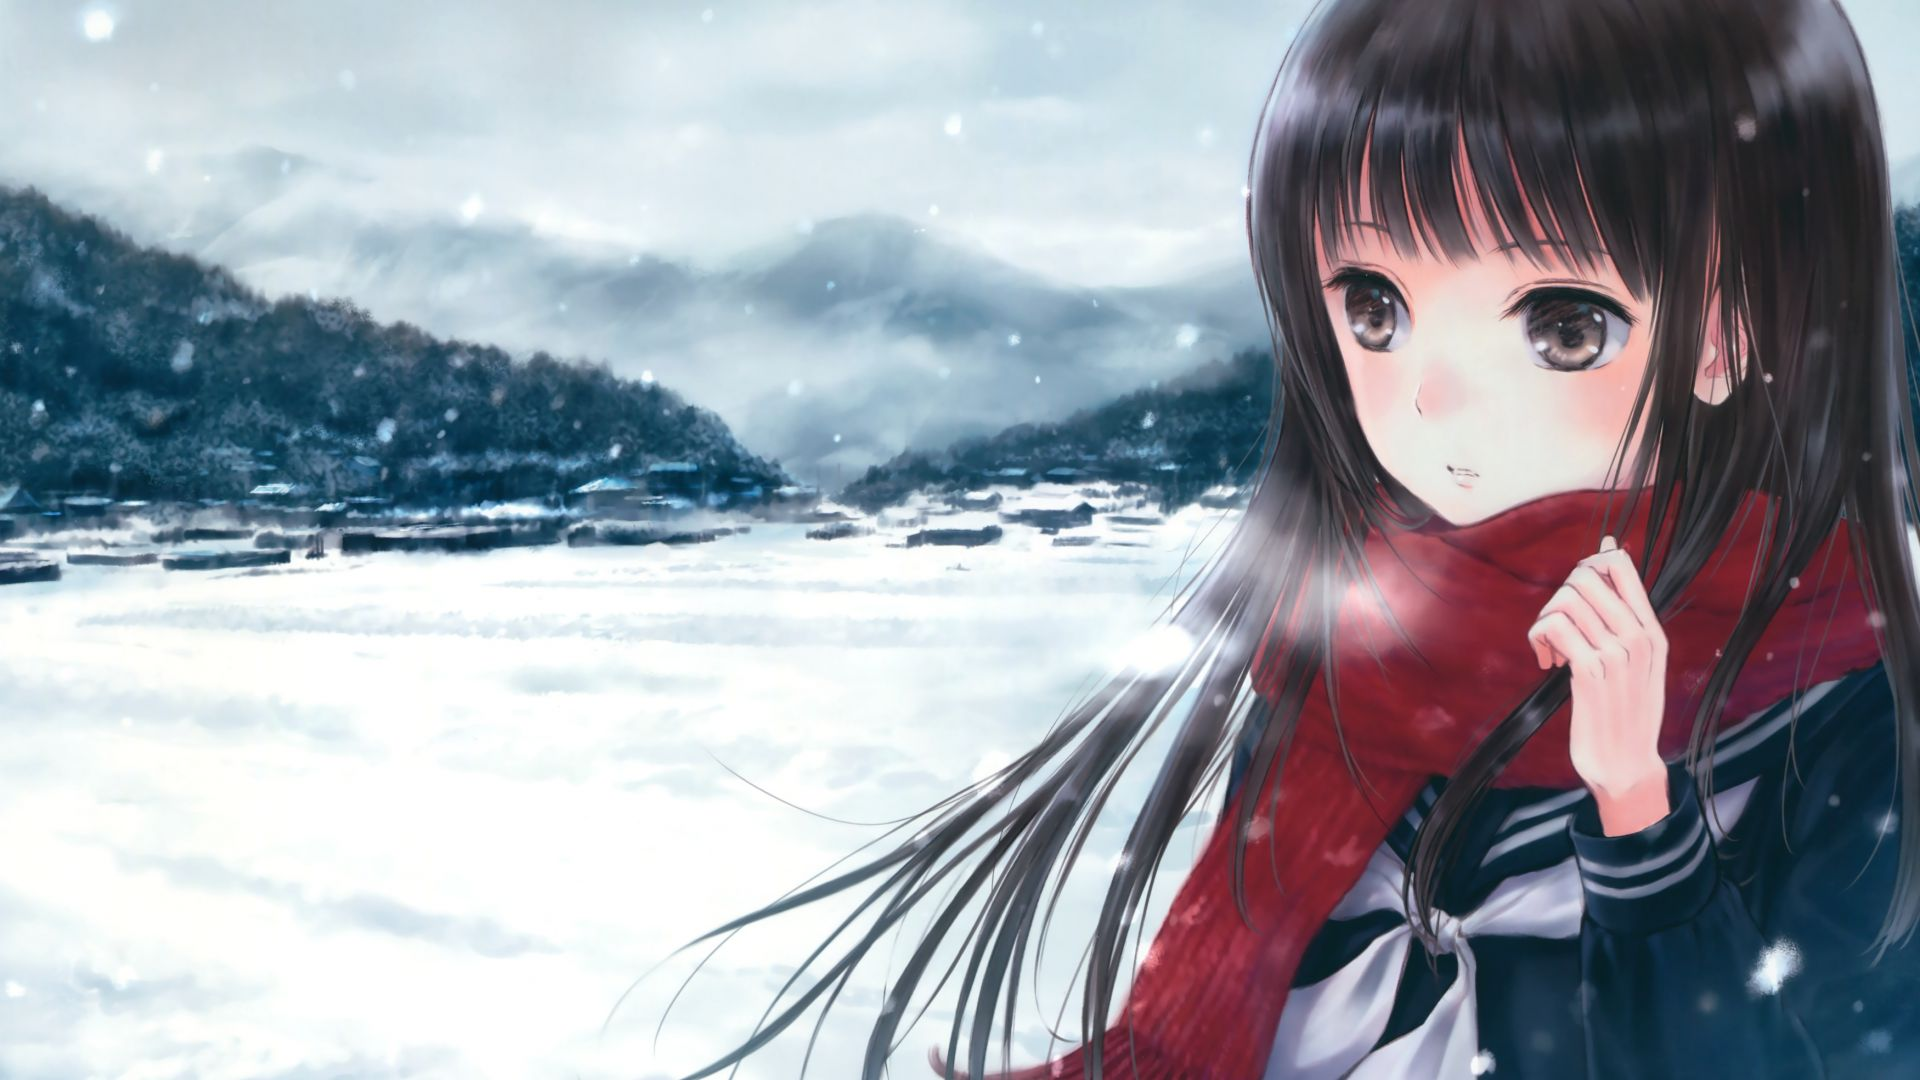 anime, girl, beauty, winter, 4k (horizontal)